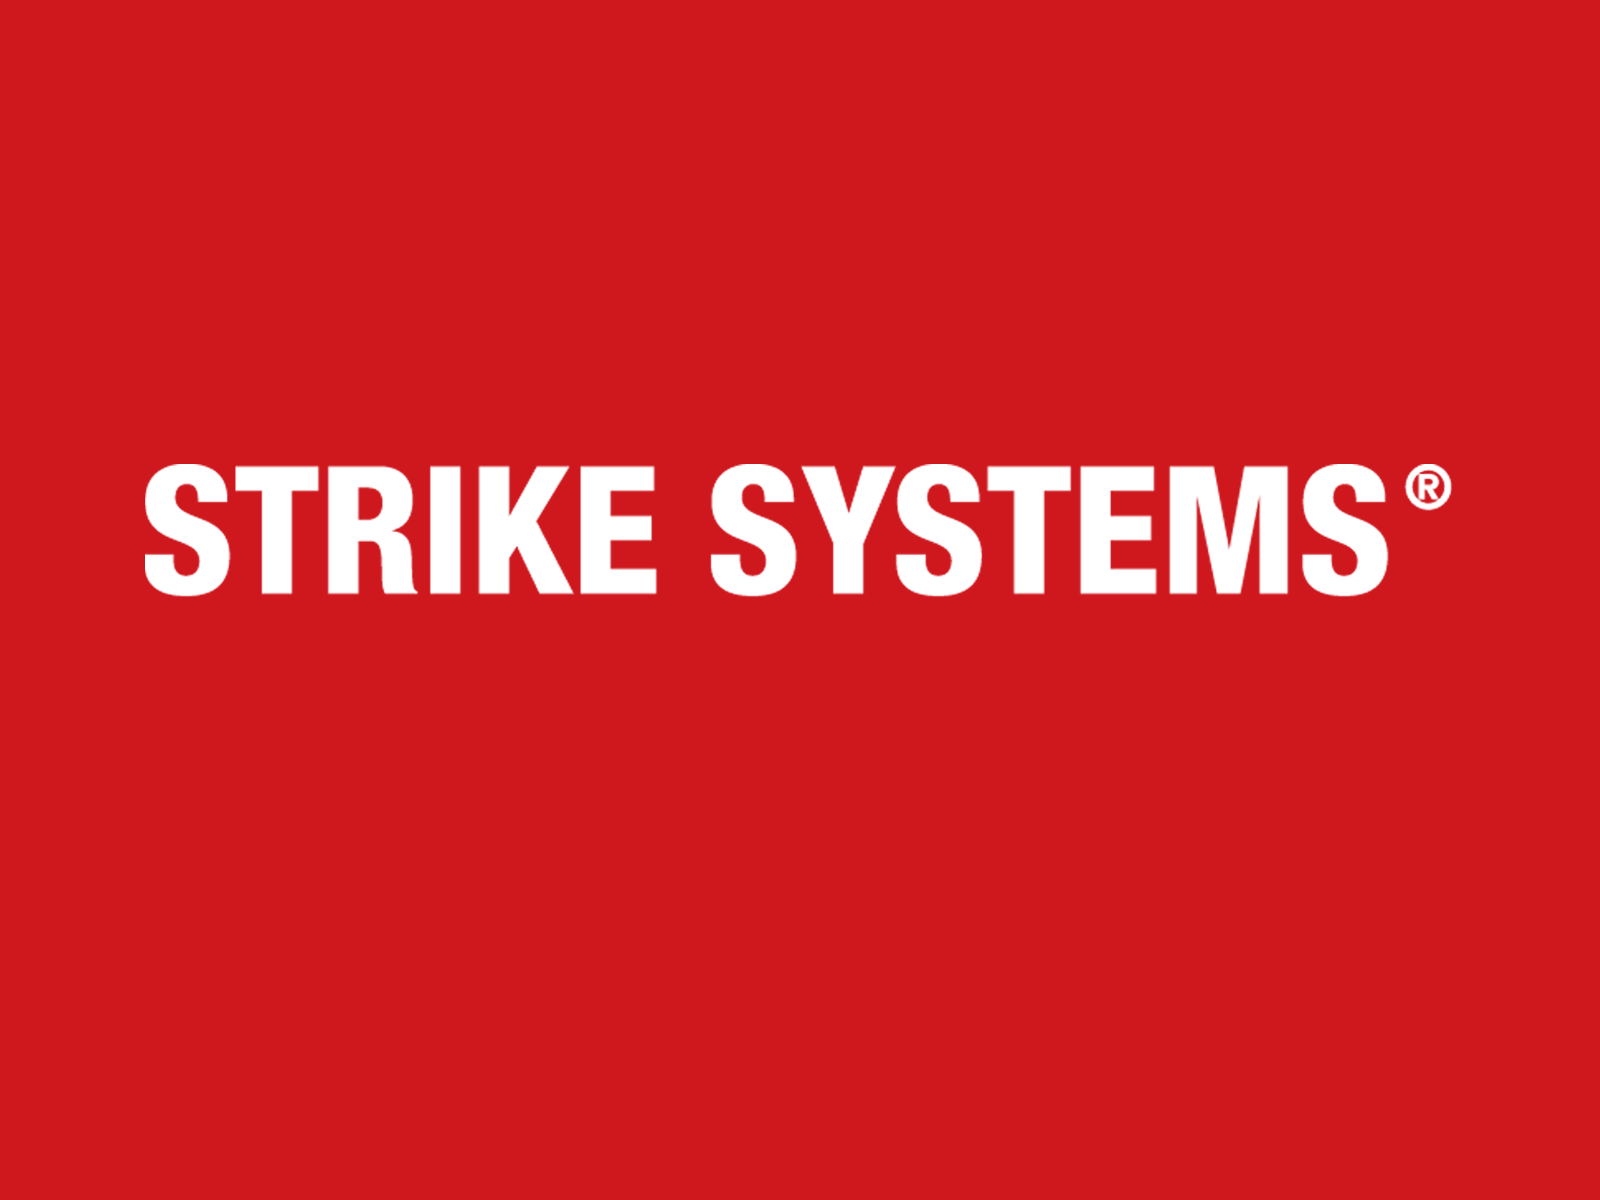 STRIKE SYSTEMS